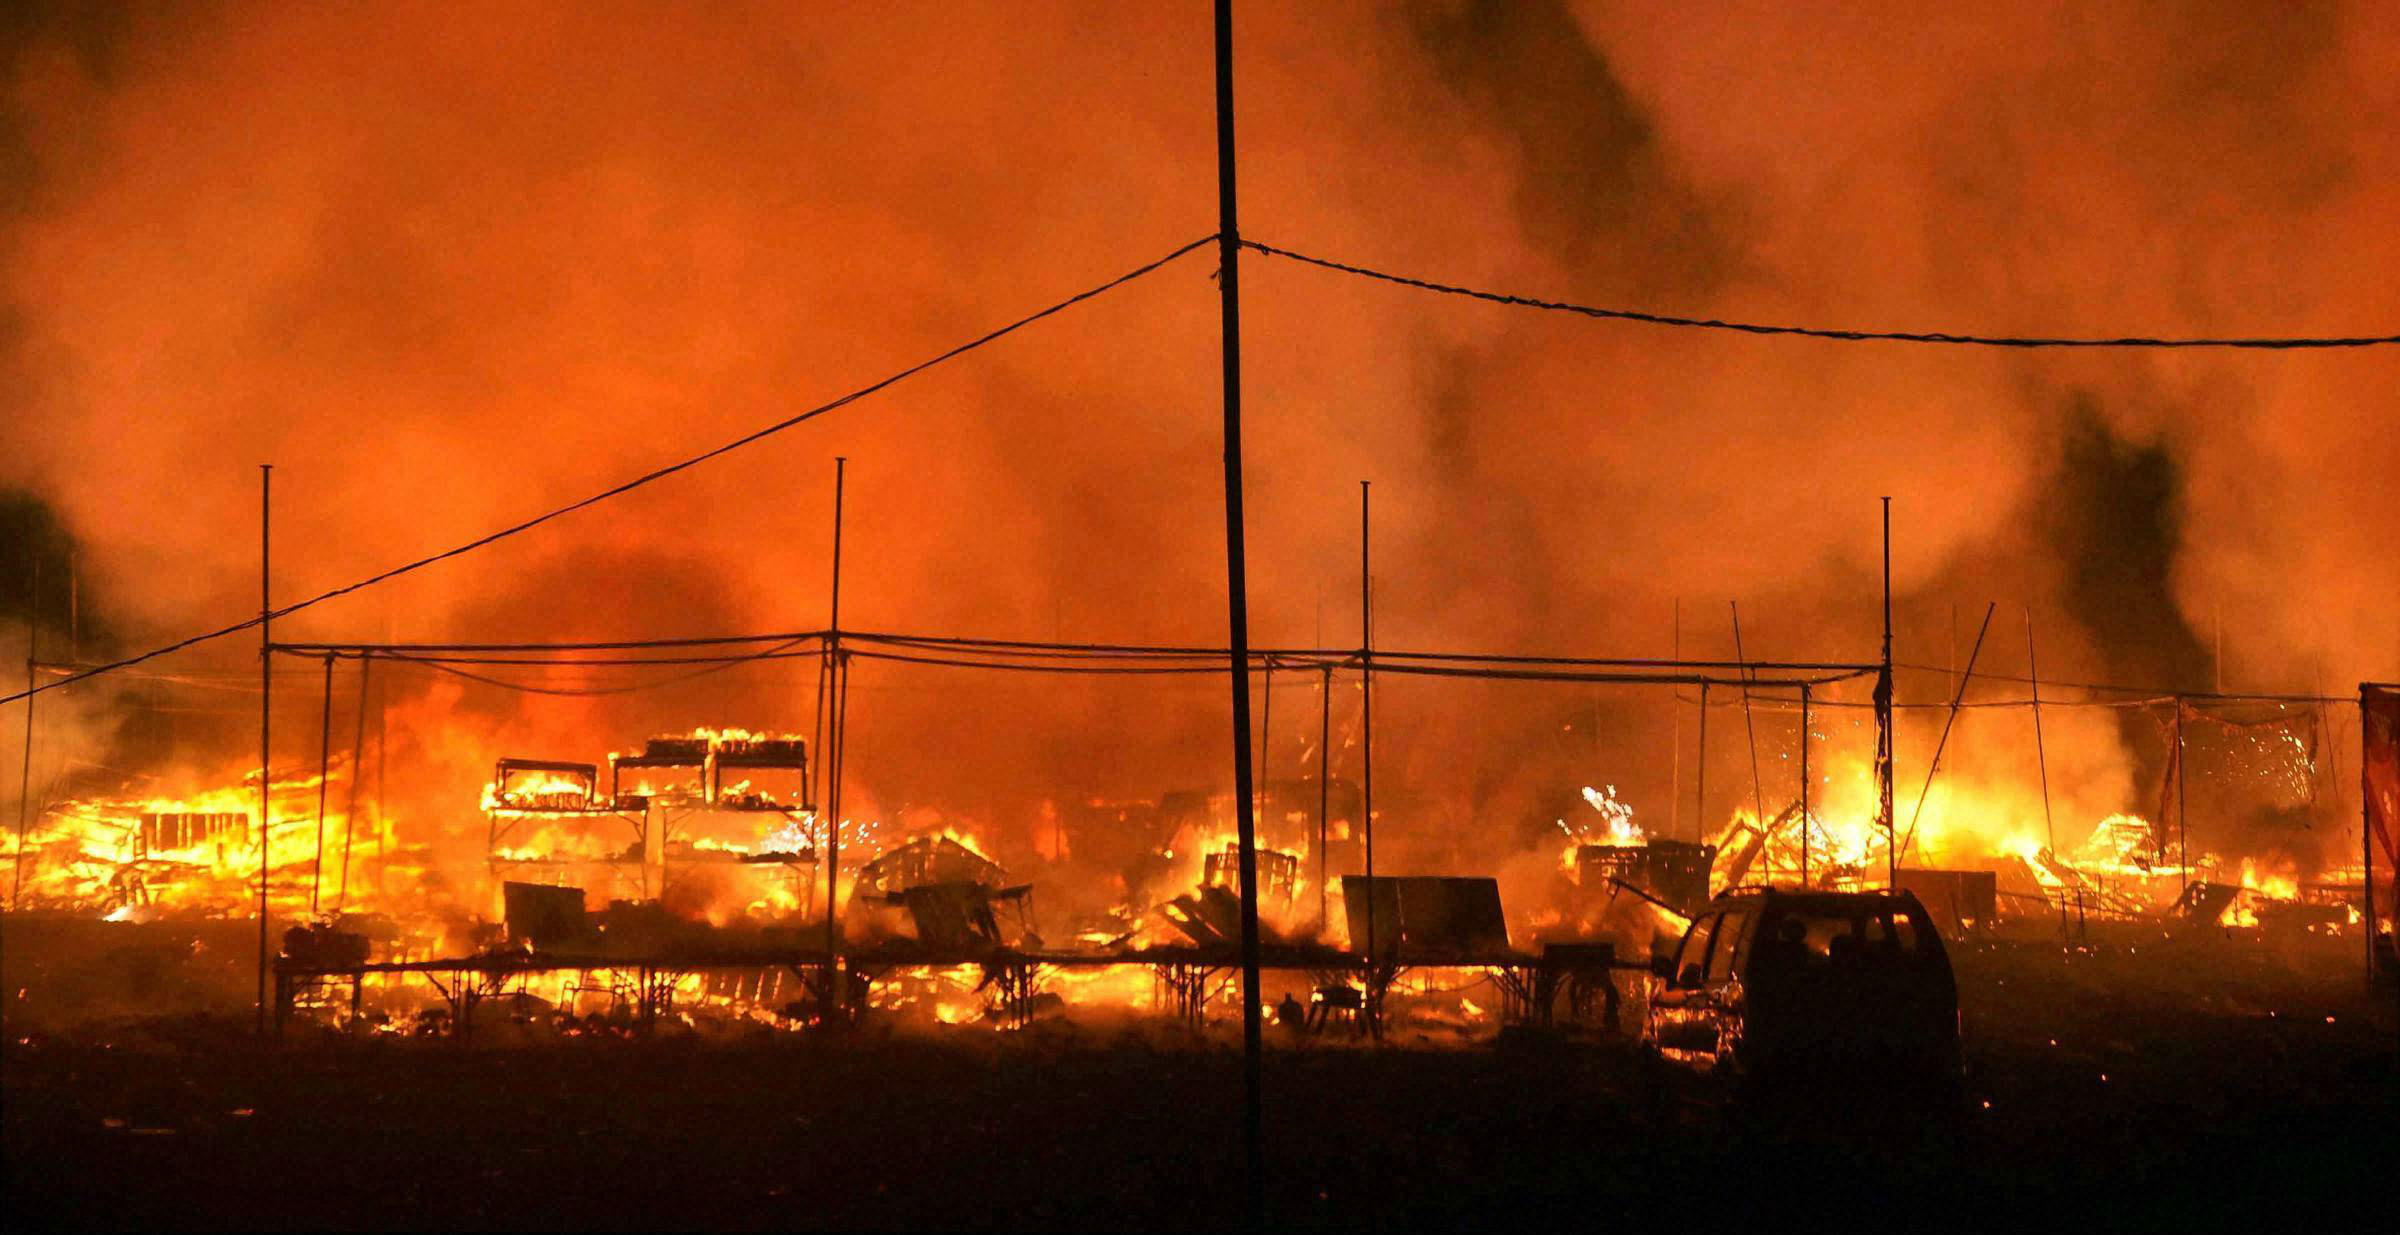 223 shops destroyed in massive fire at Faridabad